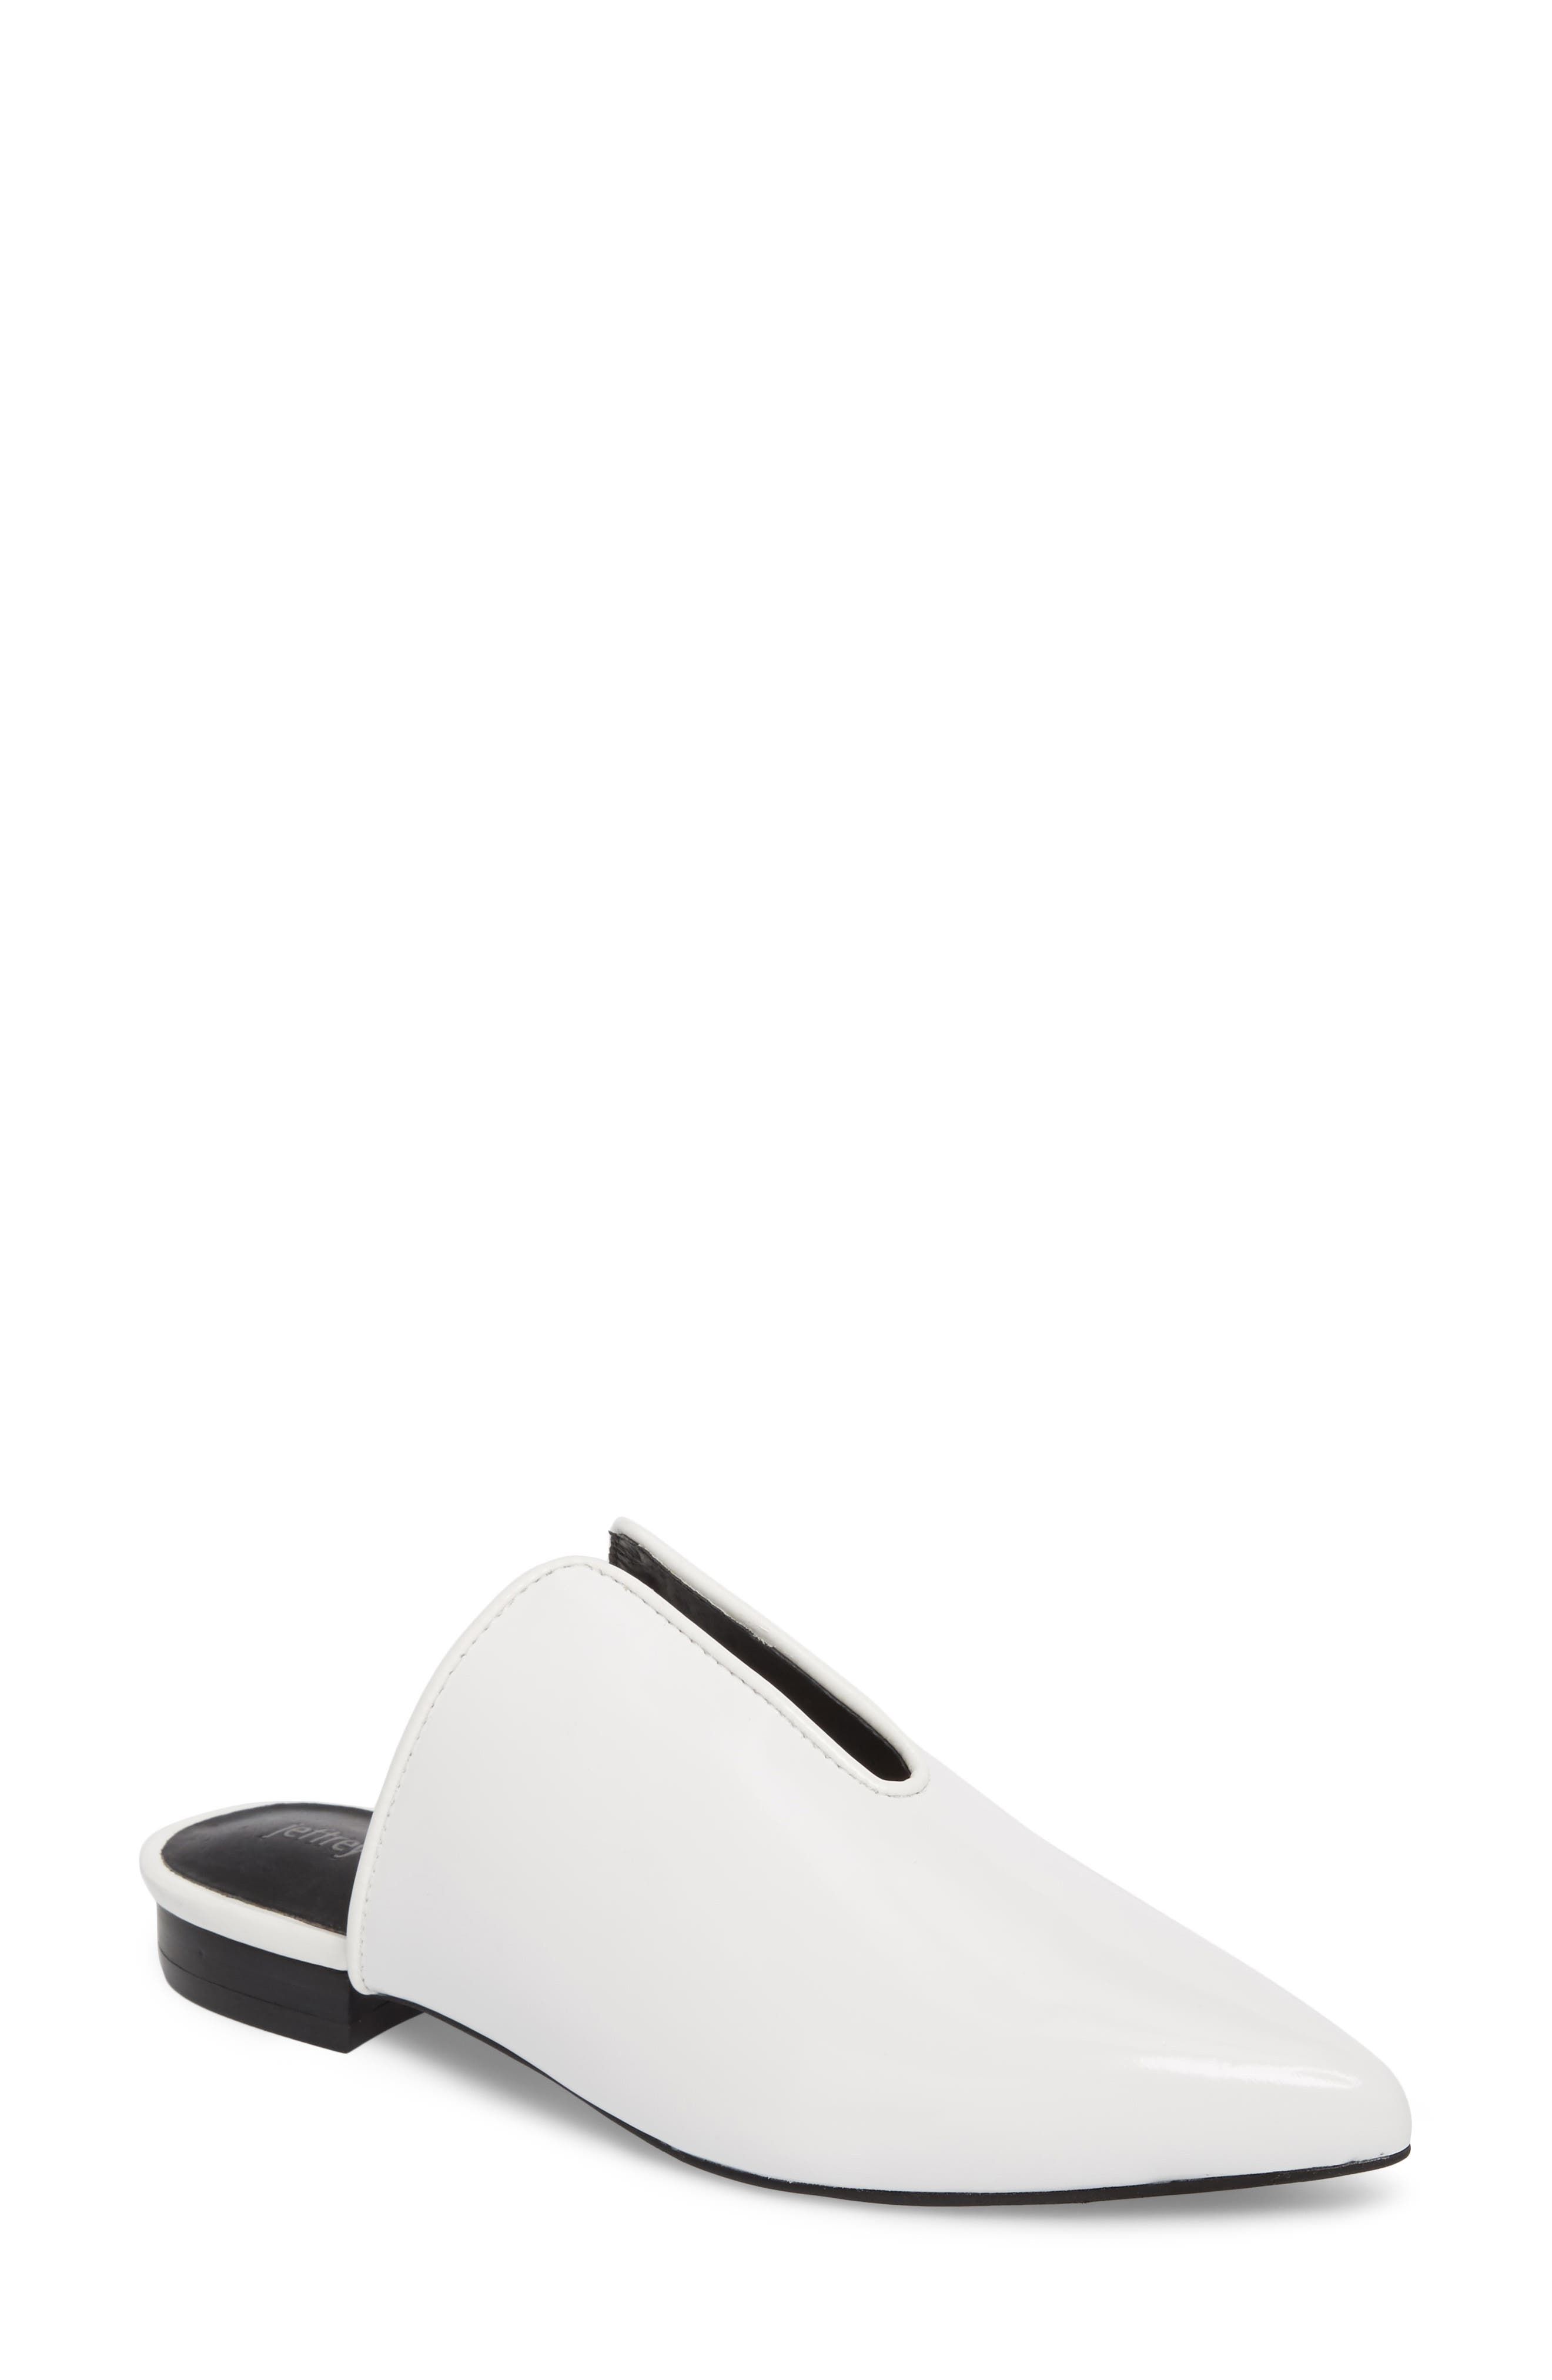 Cleos Mule,                         Main,                         color, White Leather